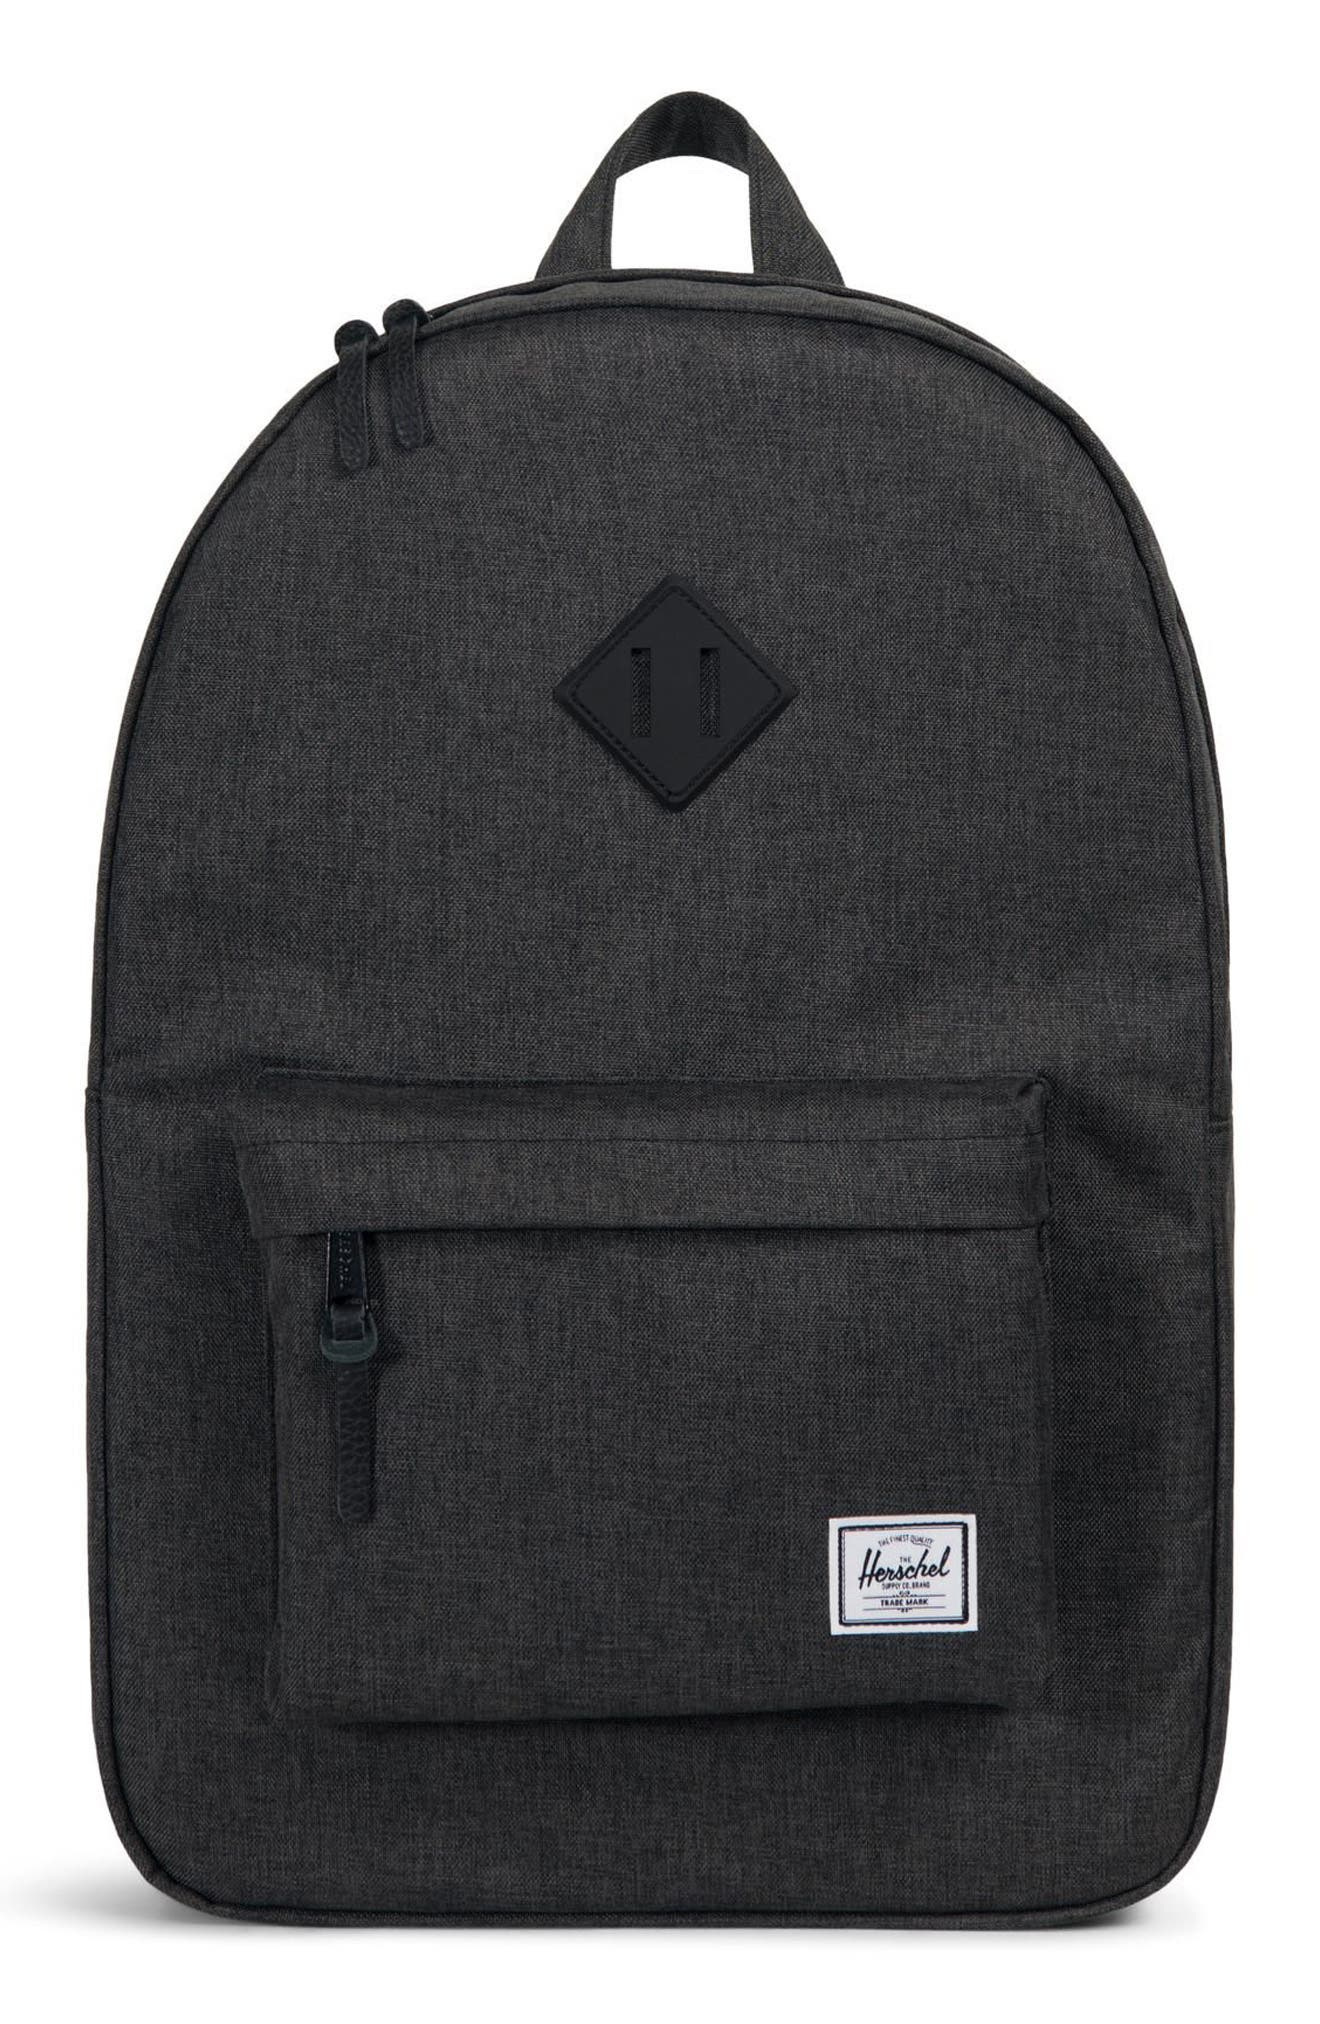 Heritage Backpack,                         Main,                         color, 001